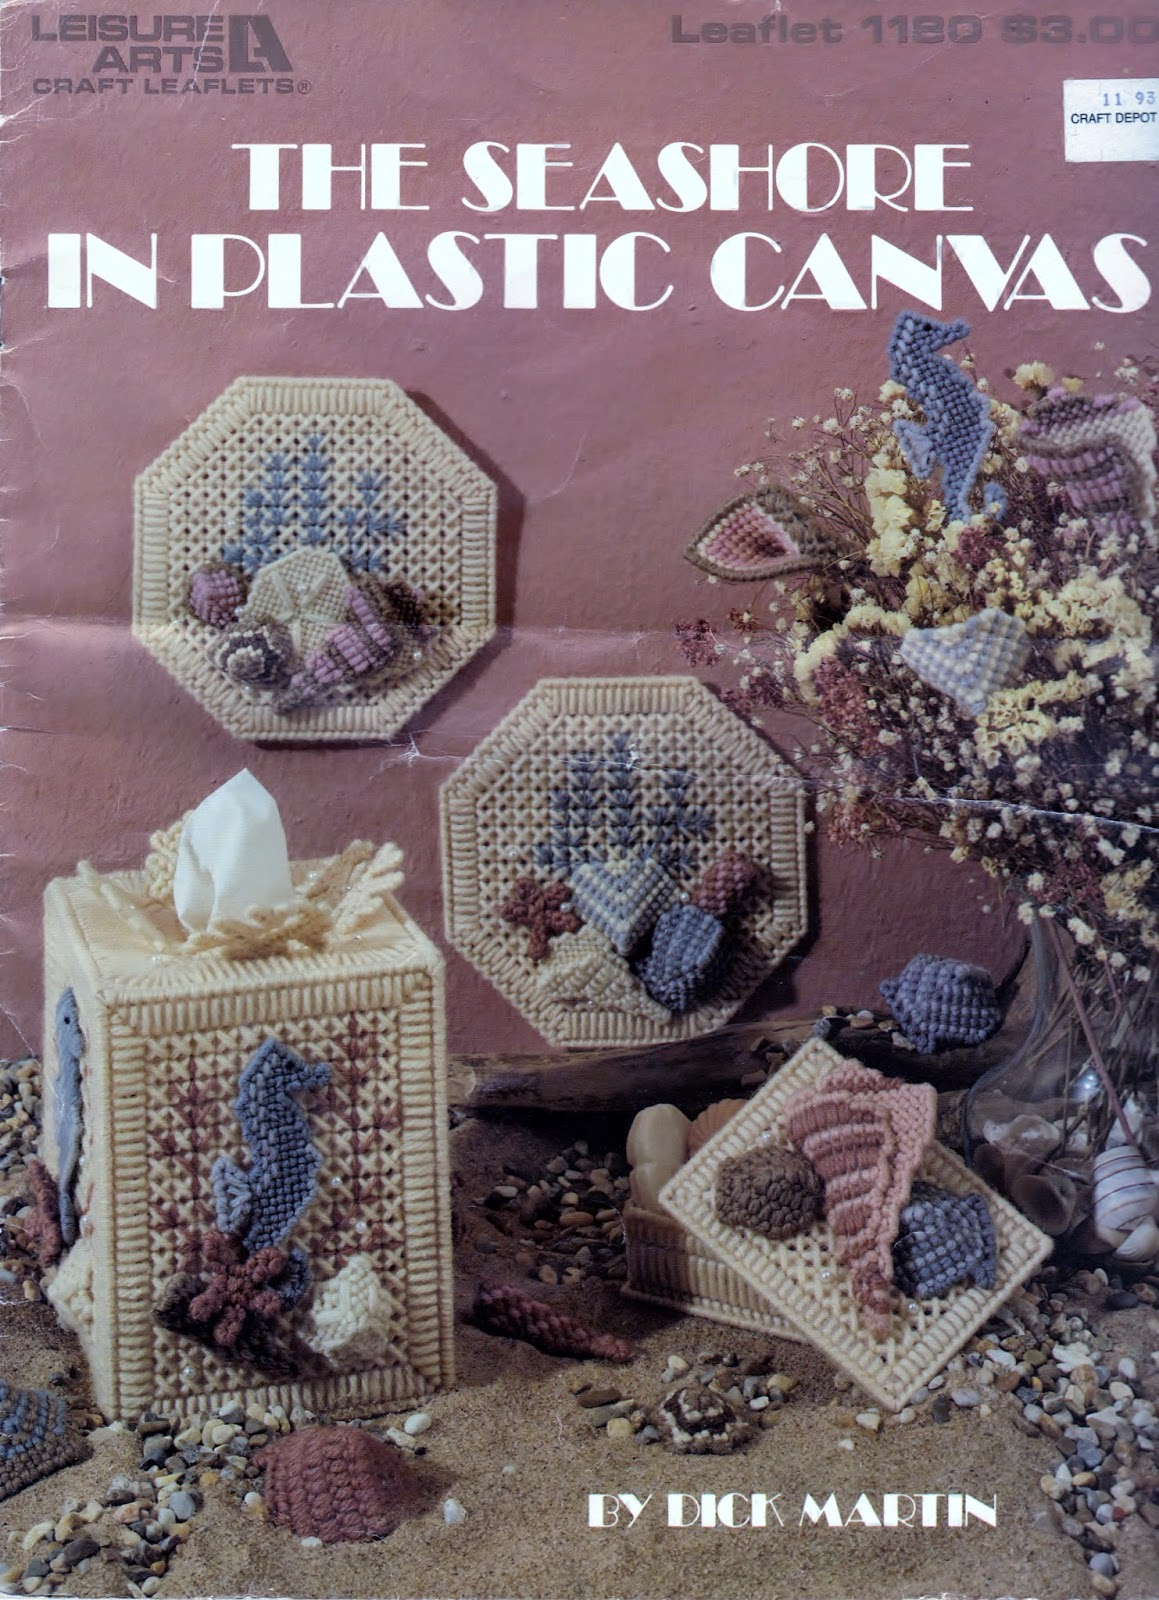 https://www.etsy.com/listing/128656490/plastic-canvas-projects-1988-6-pages